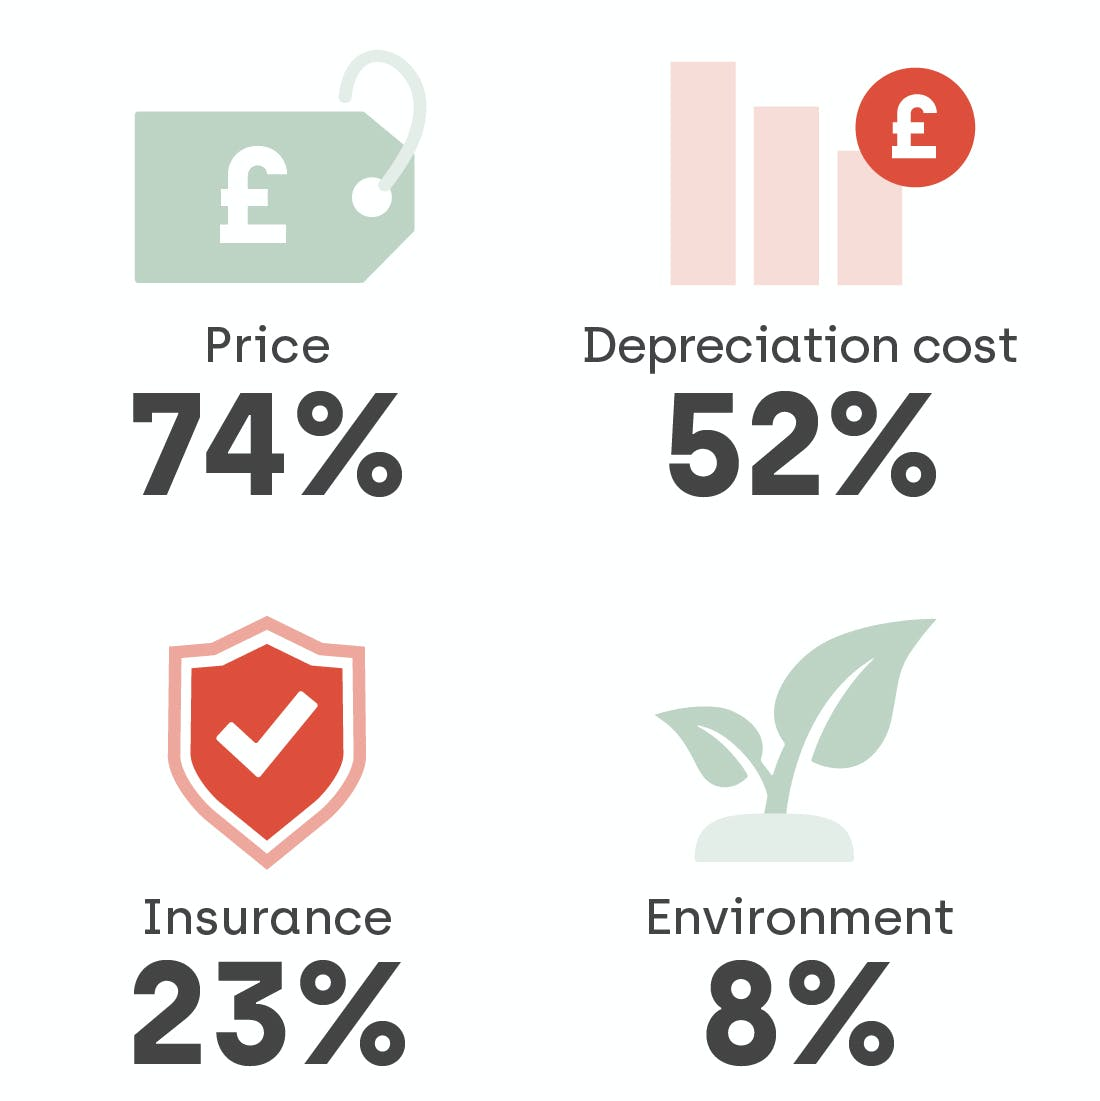 74% of people say that used cars being less expensive than new cars are the biggest attraction when buying second-hand. This is closely followed by depreciation costs (52%), insurance (23%) and environmental factors (8%)